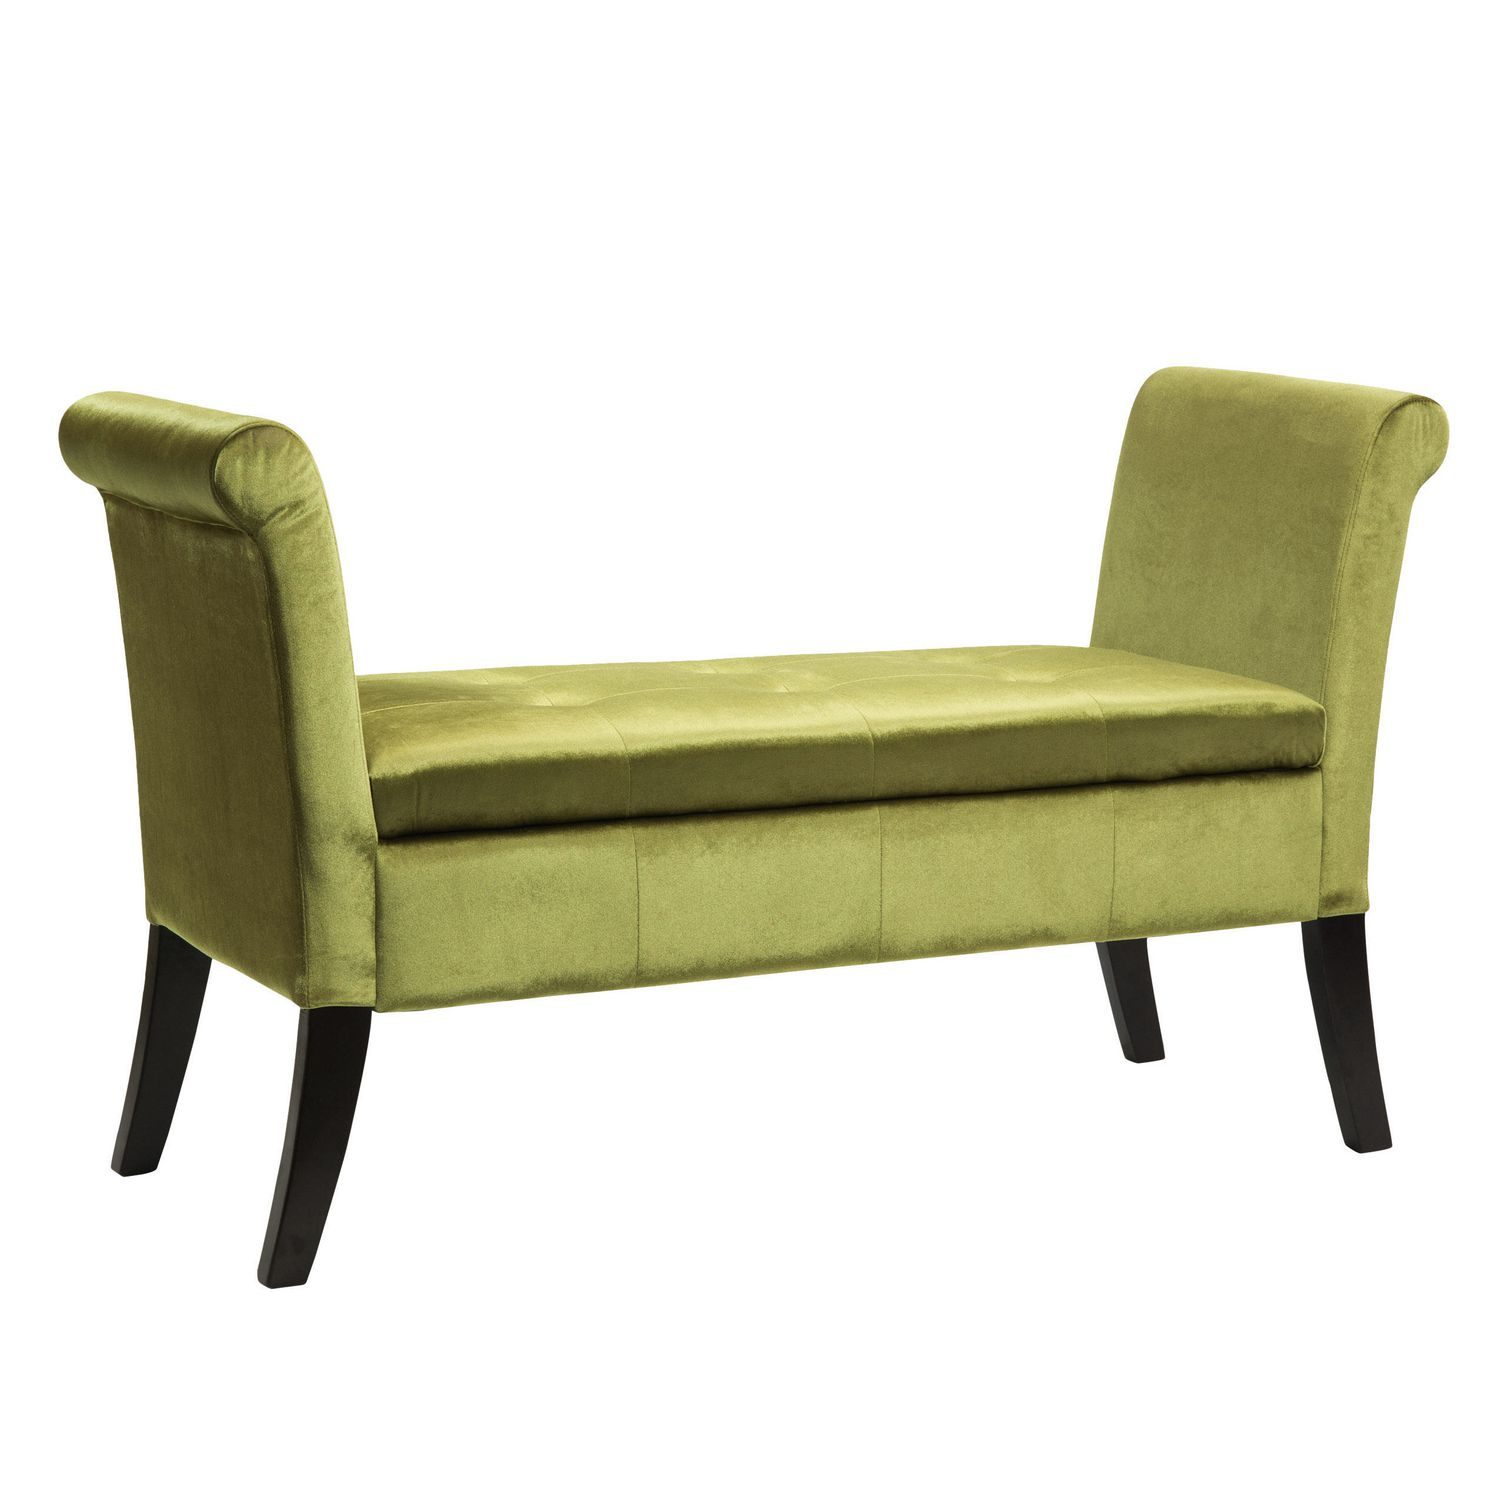 Corliving Antonio Green Velvet Storage Bench With Scrolled Arms Walmart Canada